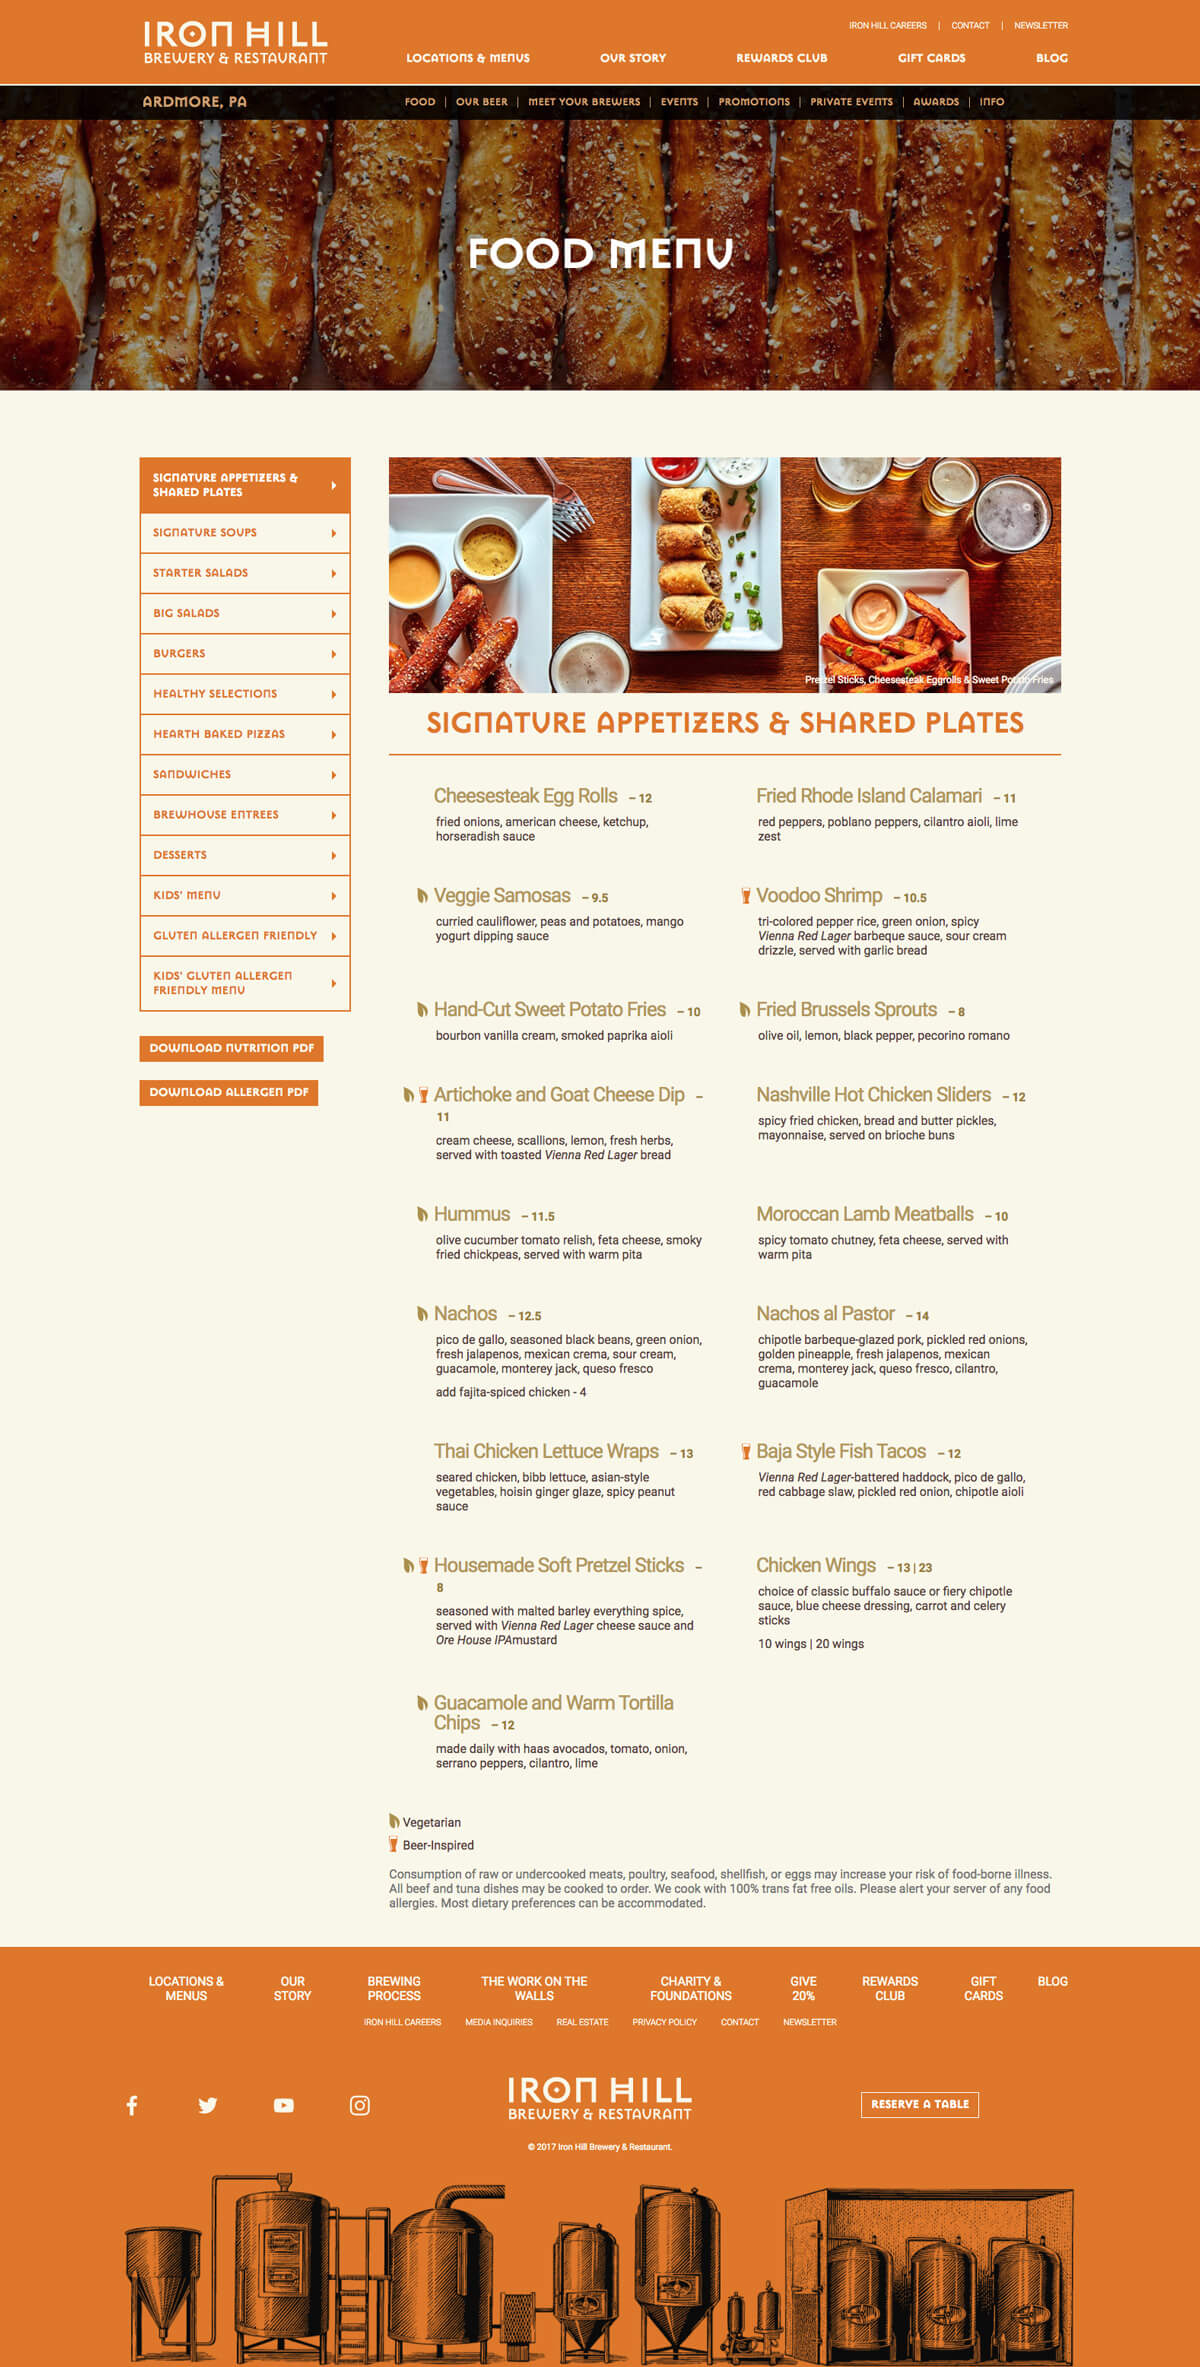 A screen capture of the Iron Hill Brewery website food menu page.